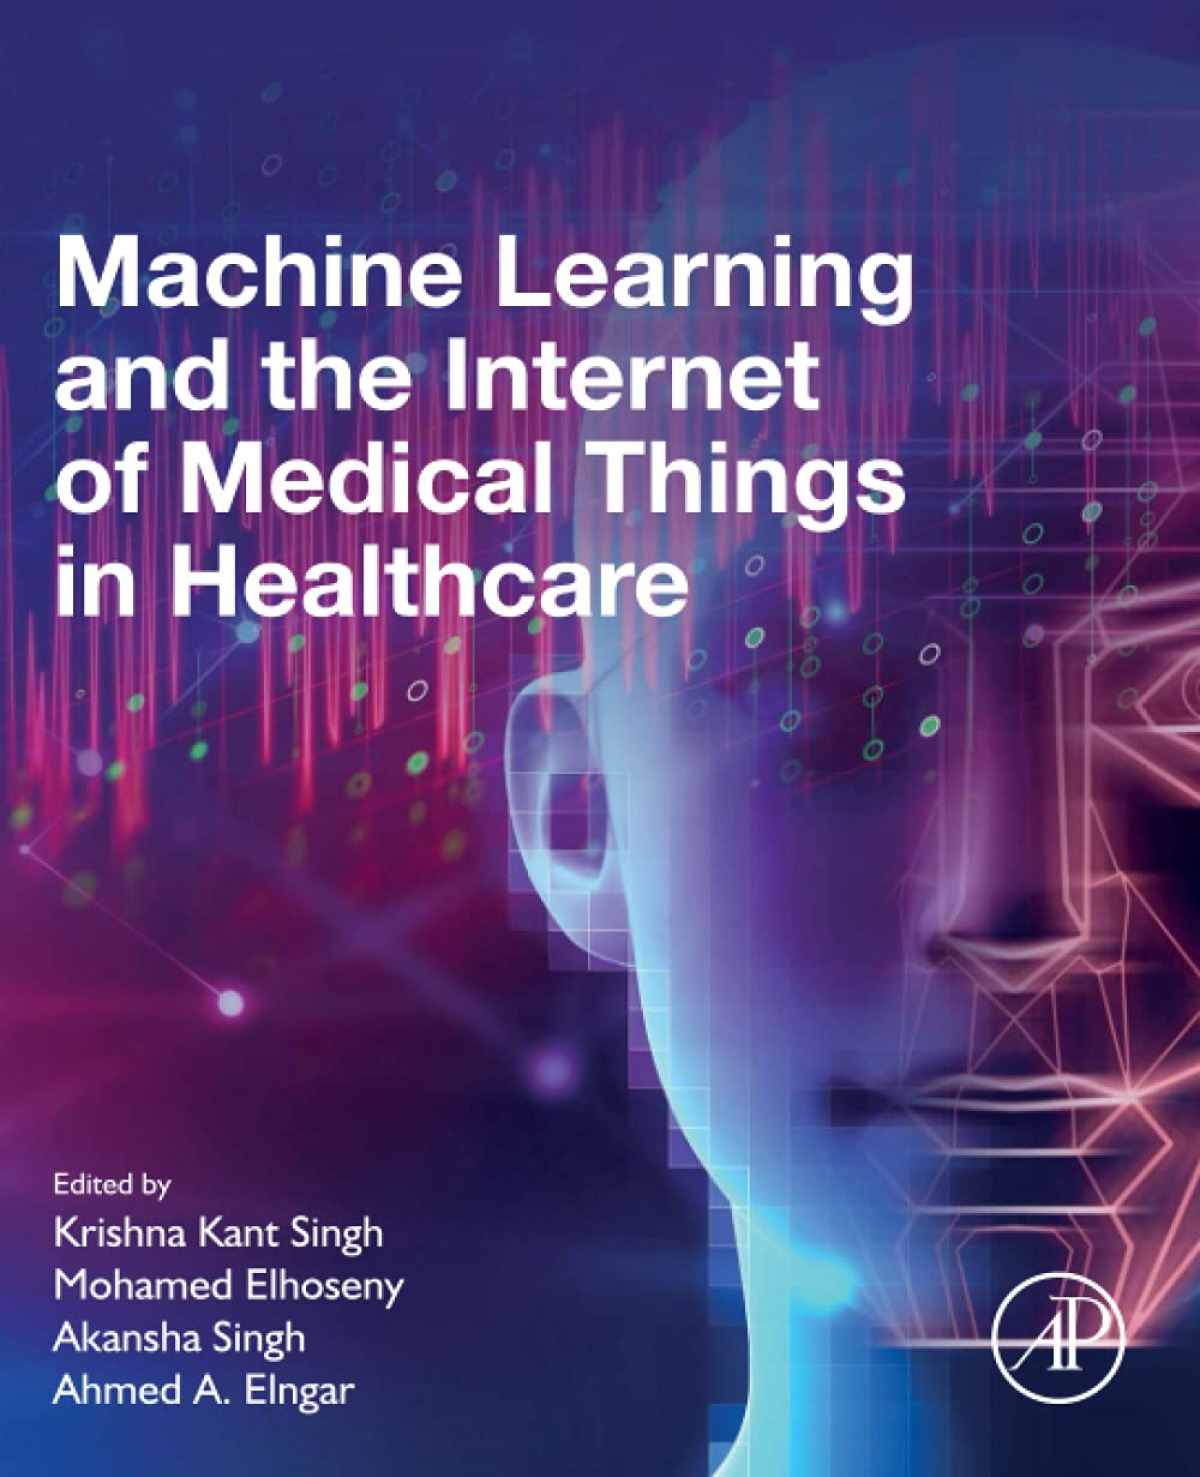 MACHINE LEARNING AND THE INTERNET MEDICAL THINGS HEALTHCARE